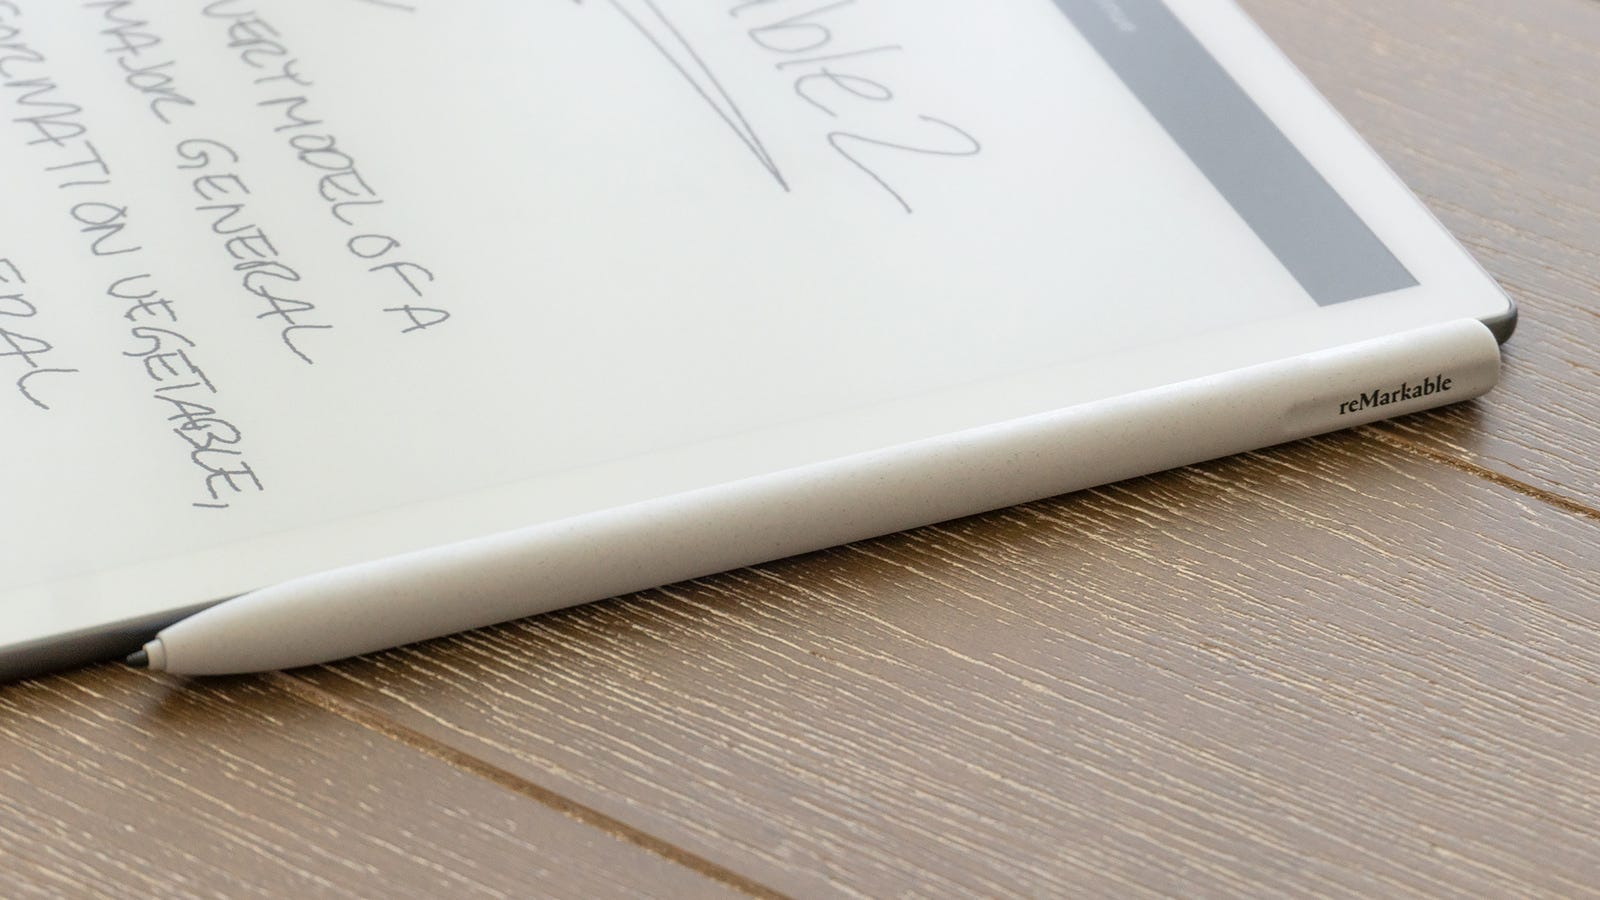 Like the Apple Pencil, the reMarkable 2's stylus options can be secured to the side of the table with magnet